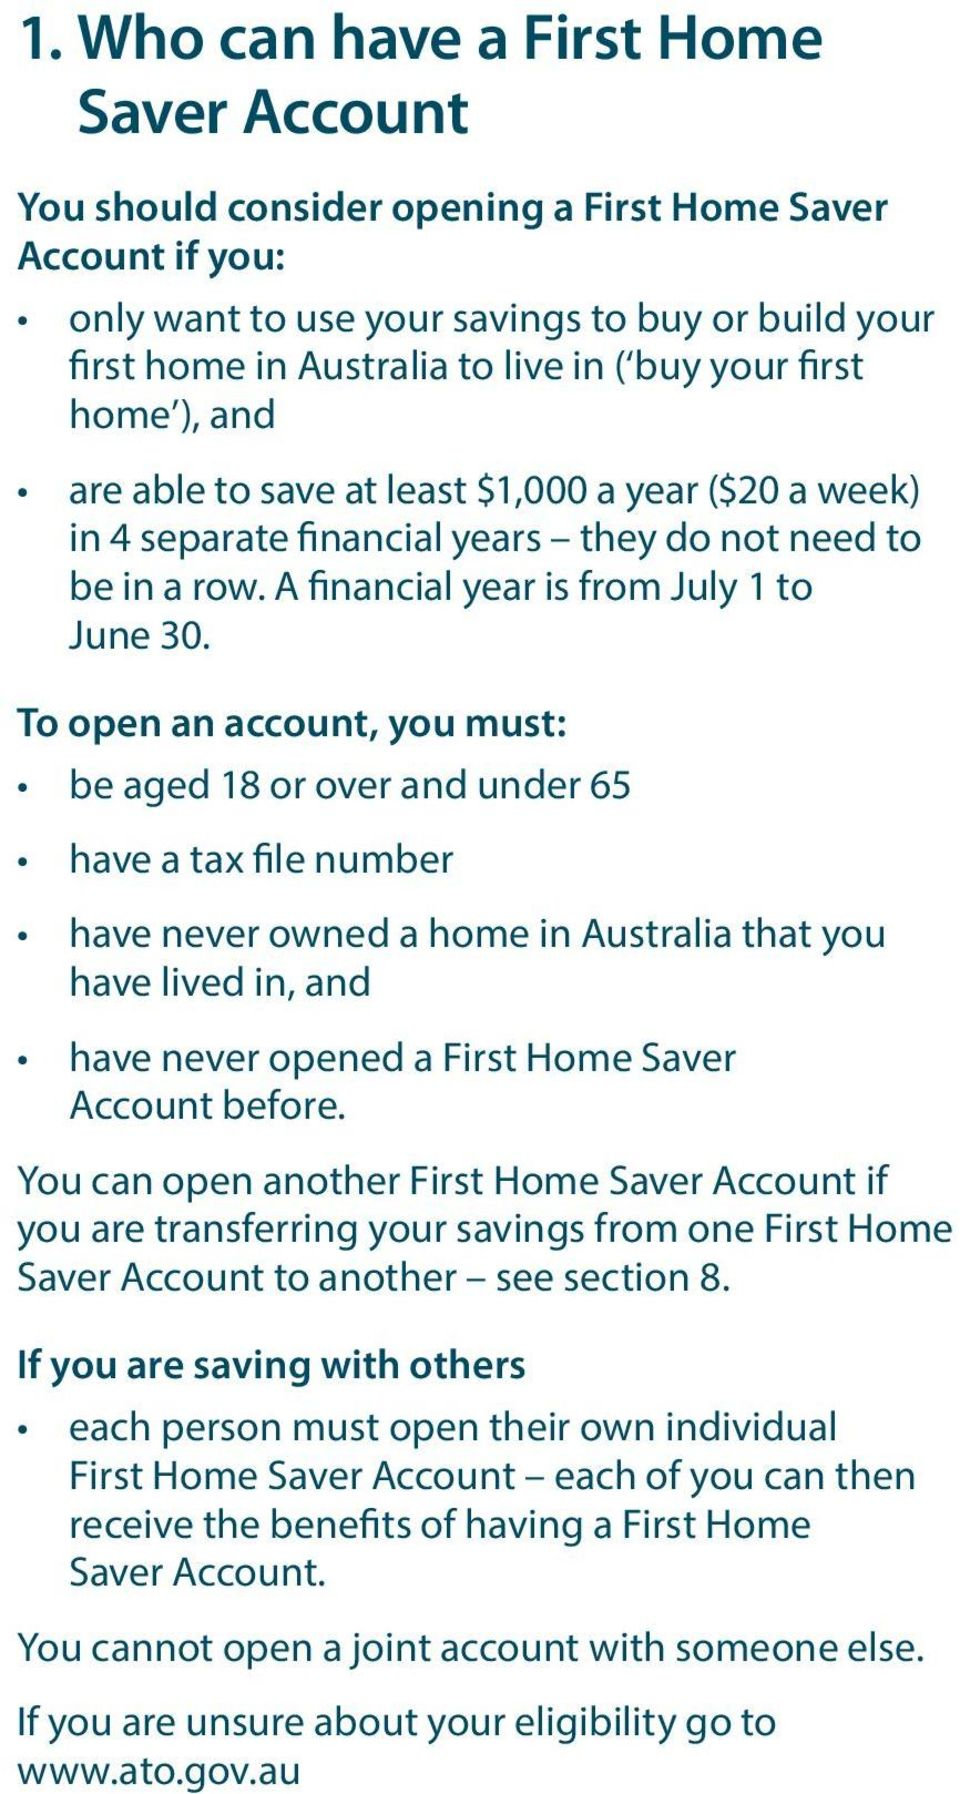 To open an account, you must: be aged 18 or over and under 65 have a tax file number have never owned a home in Australia that you have lived in, and have never opened a First Home Saver Account